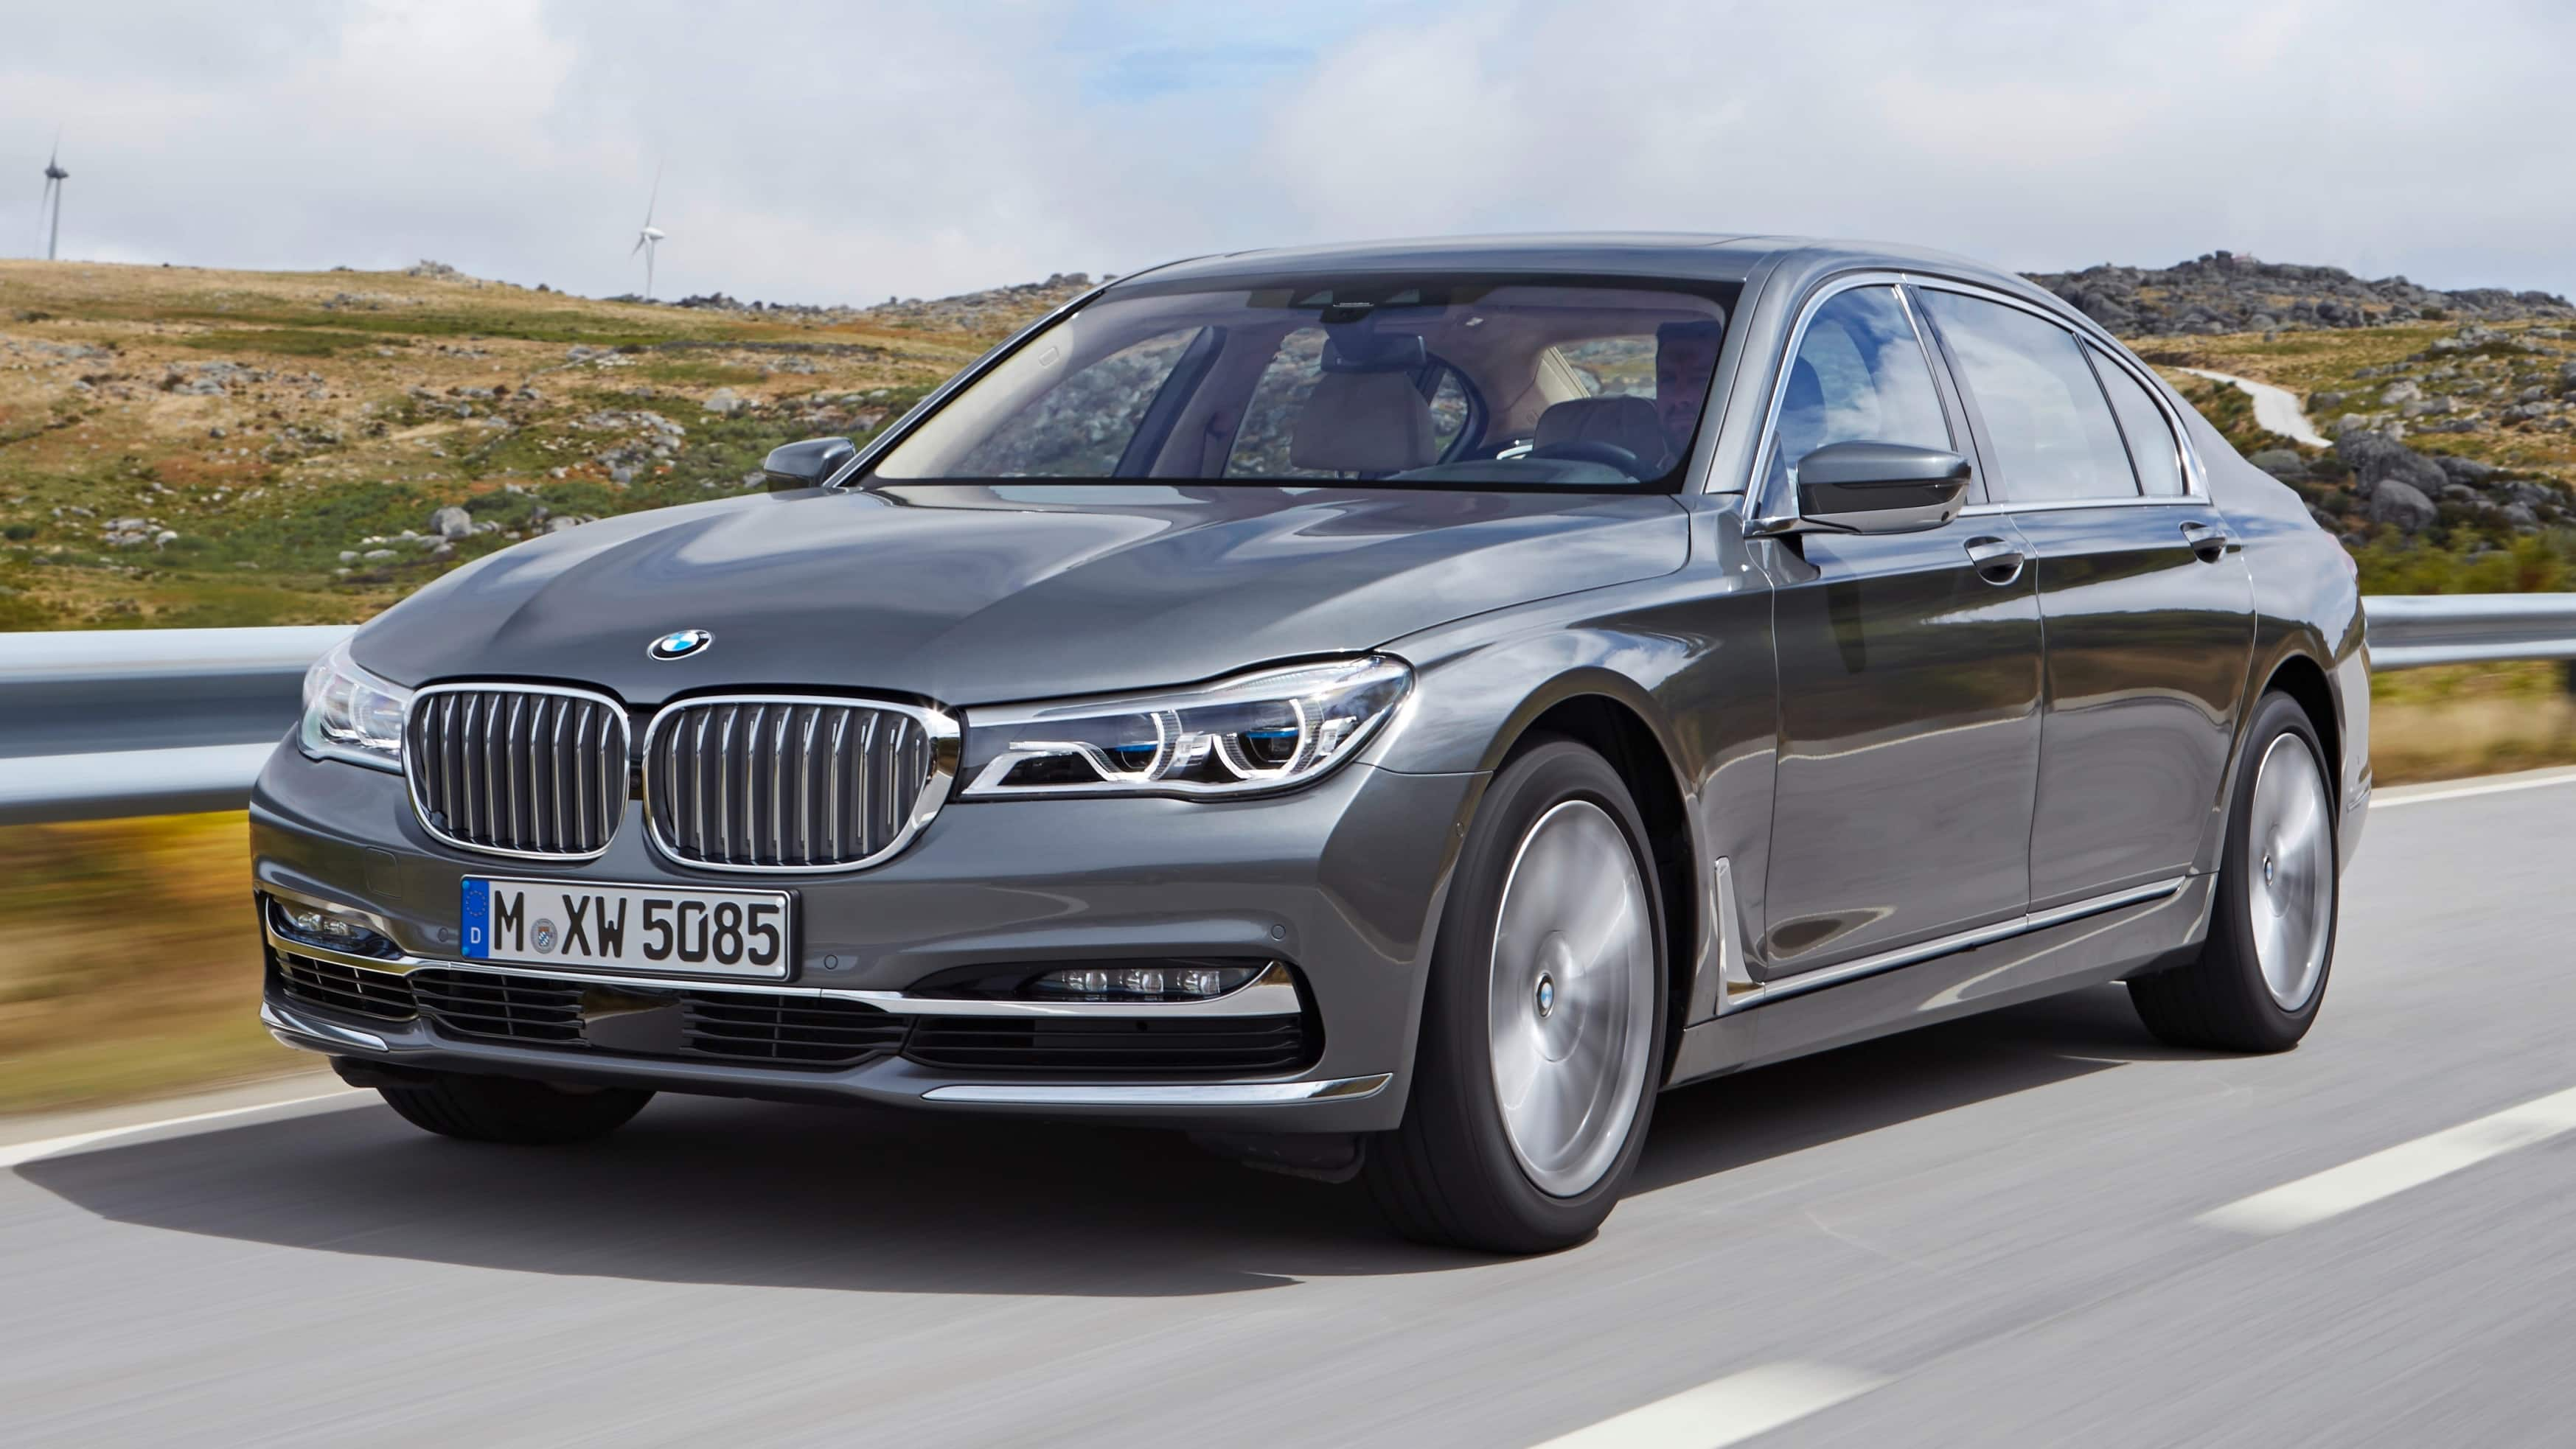 Bmw Car Lowest Price In India Wallpress Images